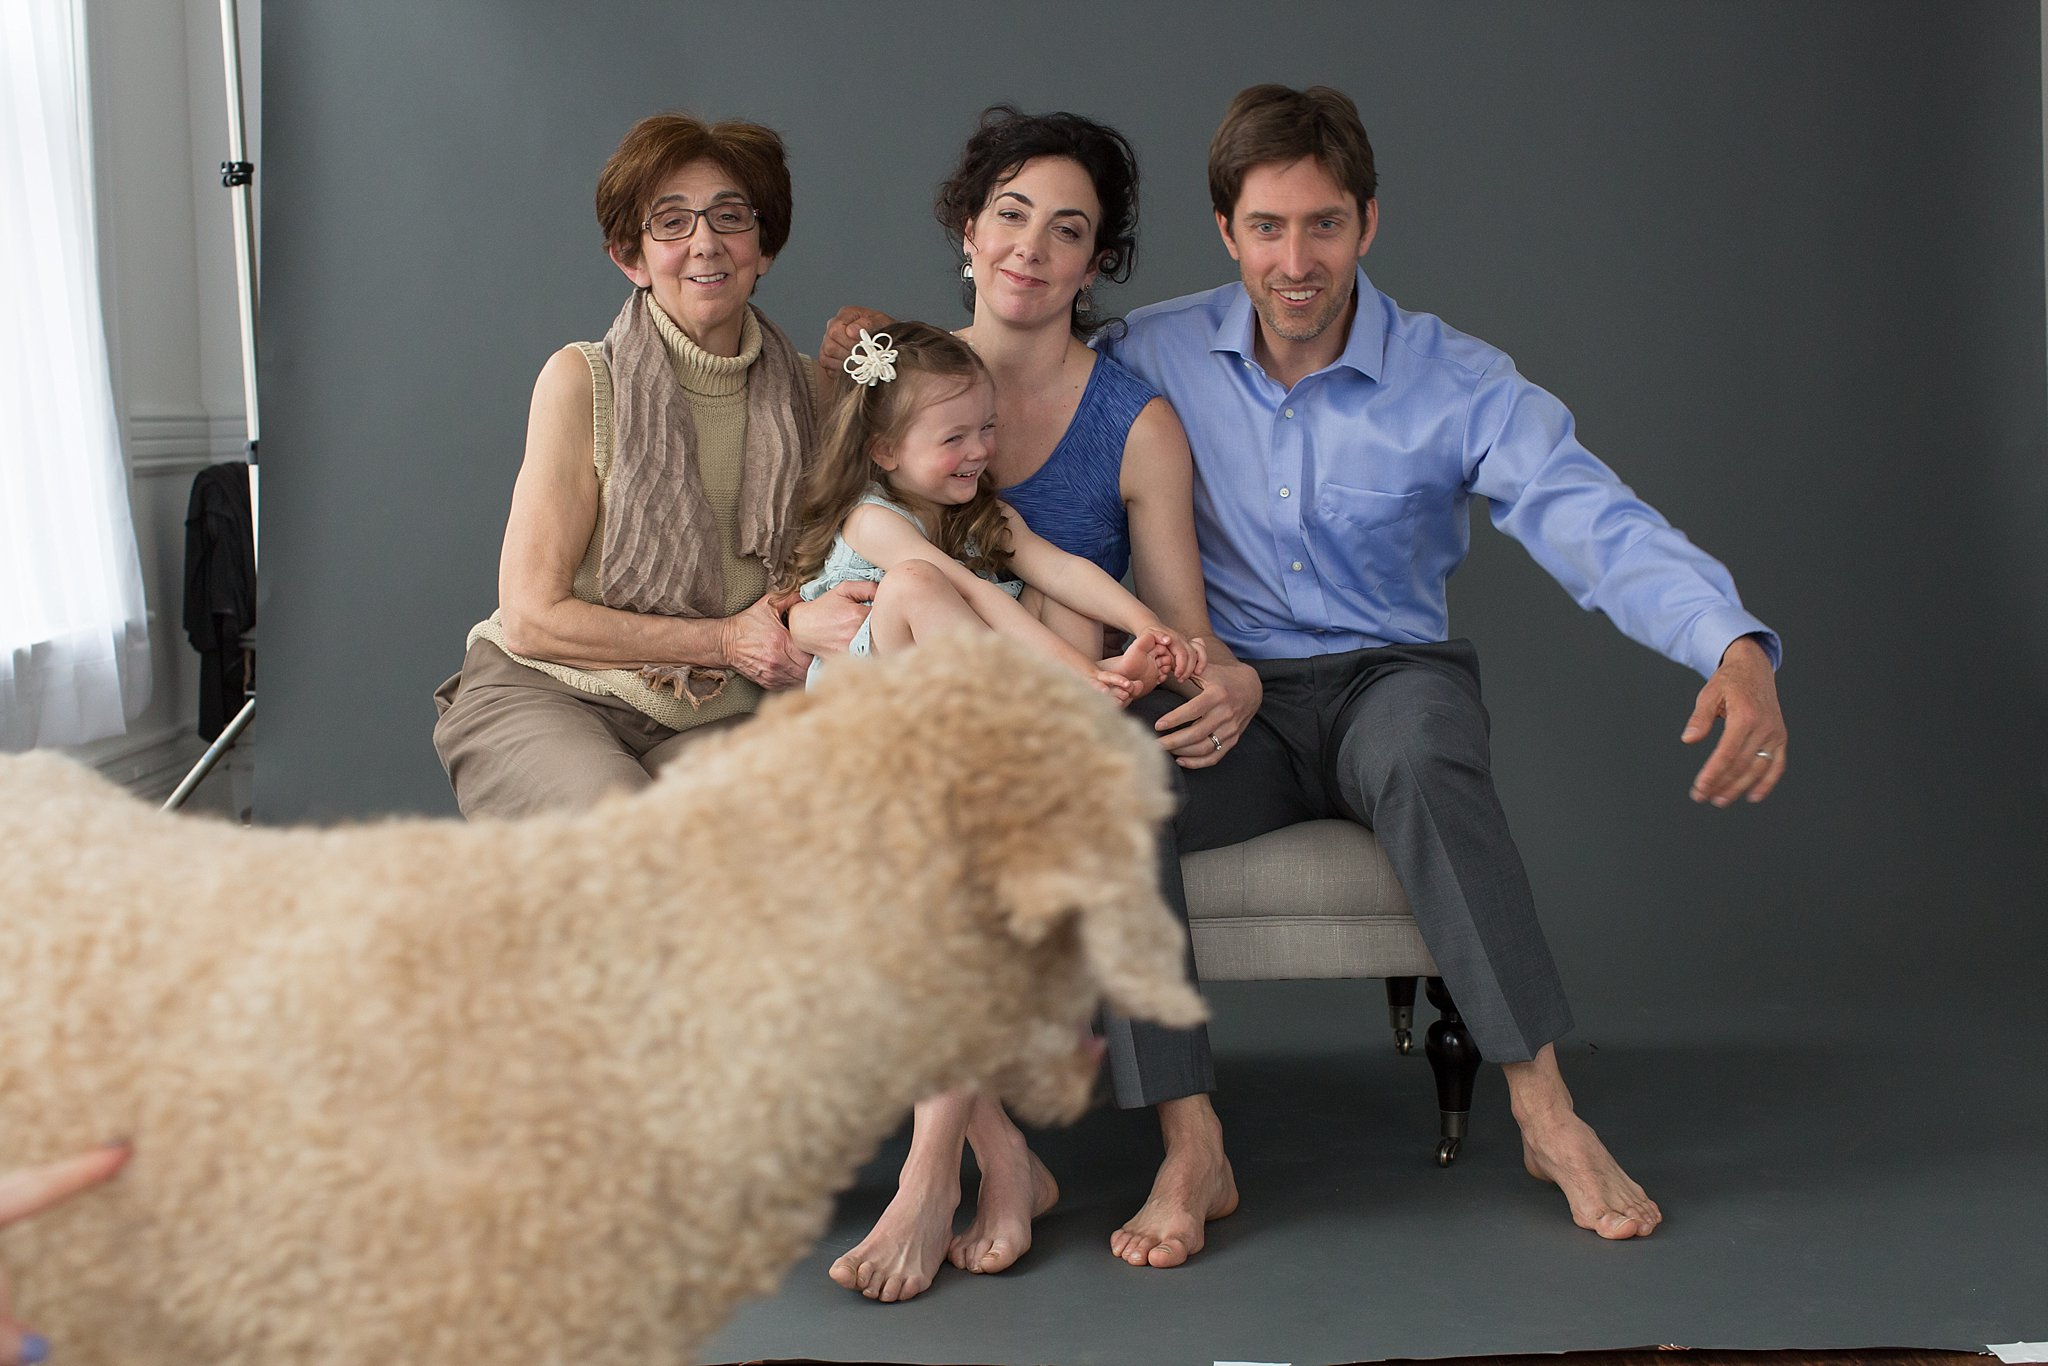 Funny Behind the Scenes Studio Family Portraits_0012.jpg